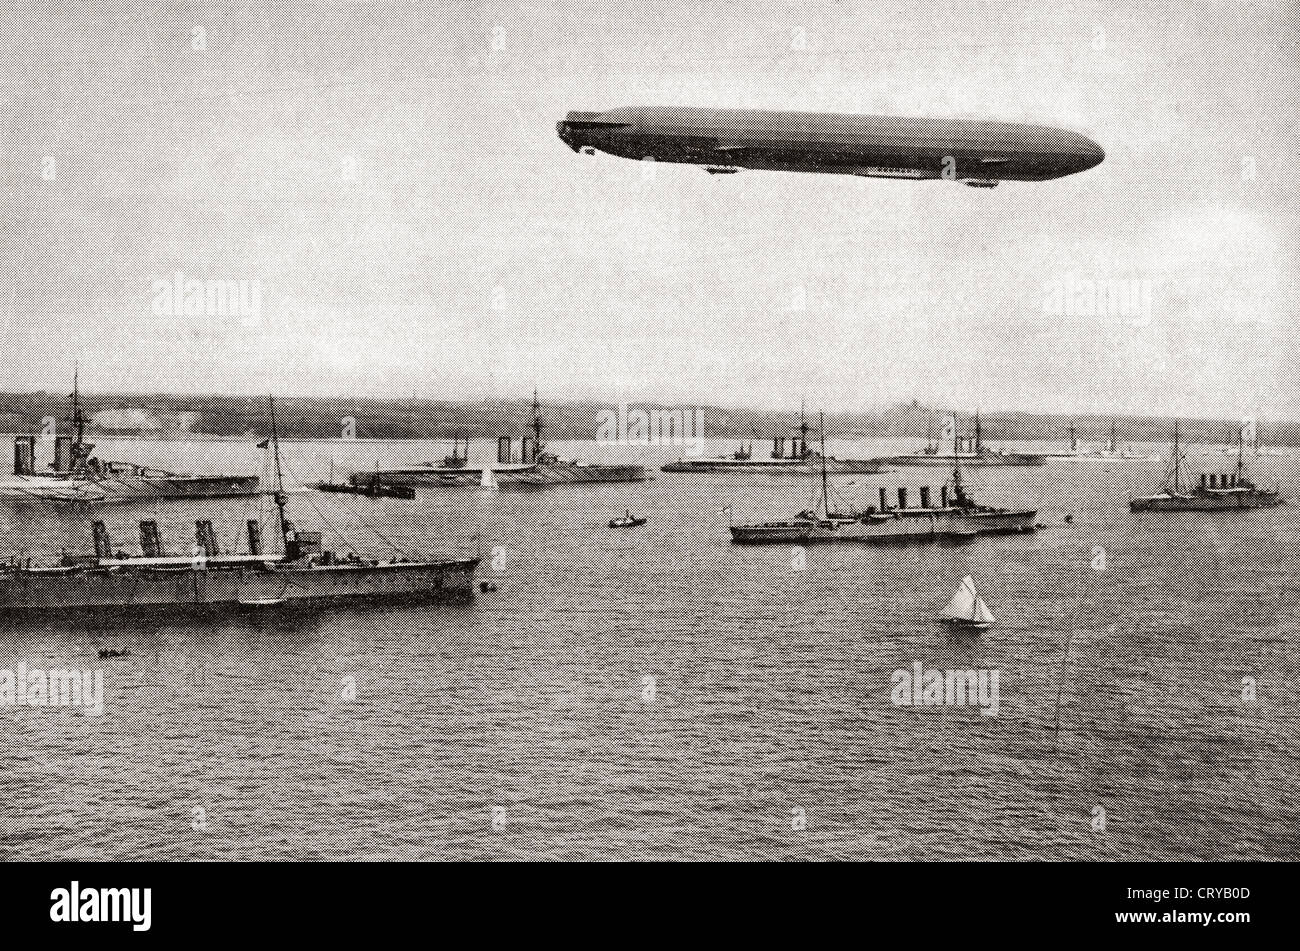 Zeppelin over warships in the Kiel canal, Germany during World War I. From The Year 1914 Illustrated. Stock Photo